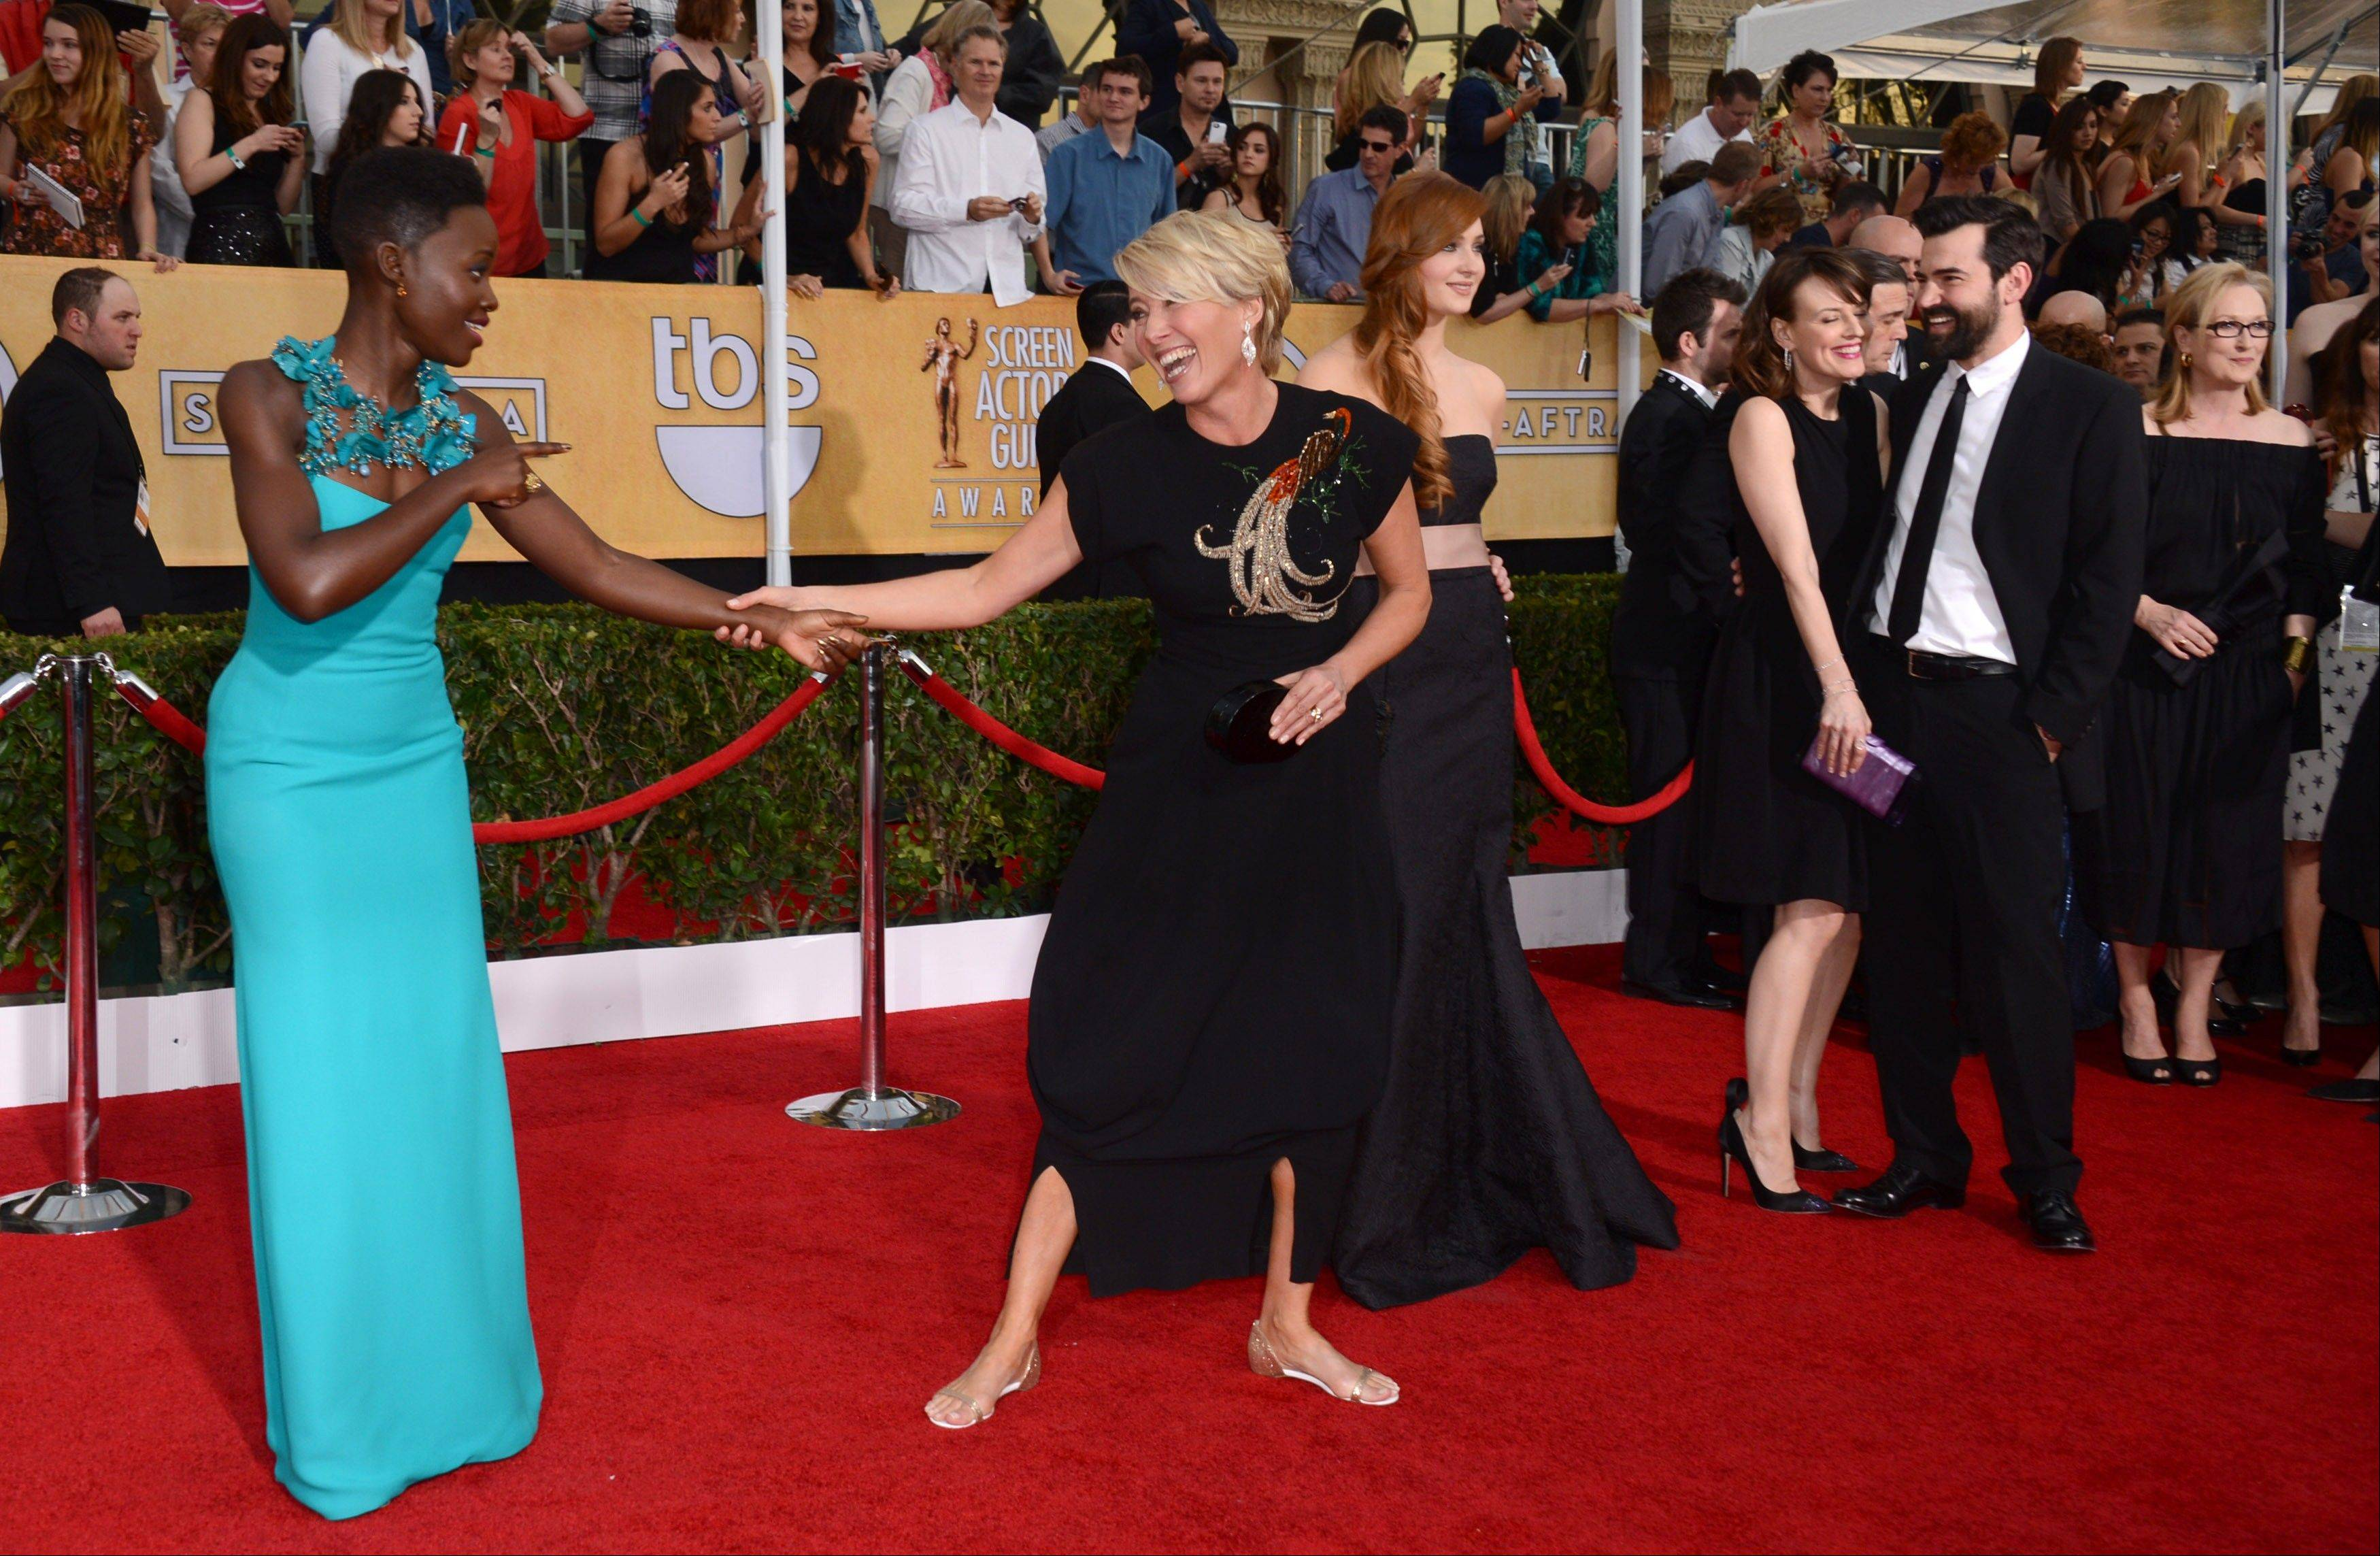 Actresses Lupita Nyong'o, left, and Emma Thompson greet one another on the SAG Awards red carpet.